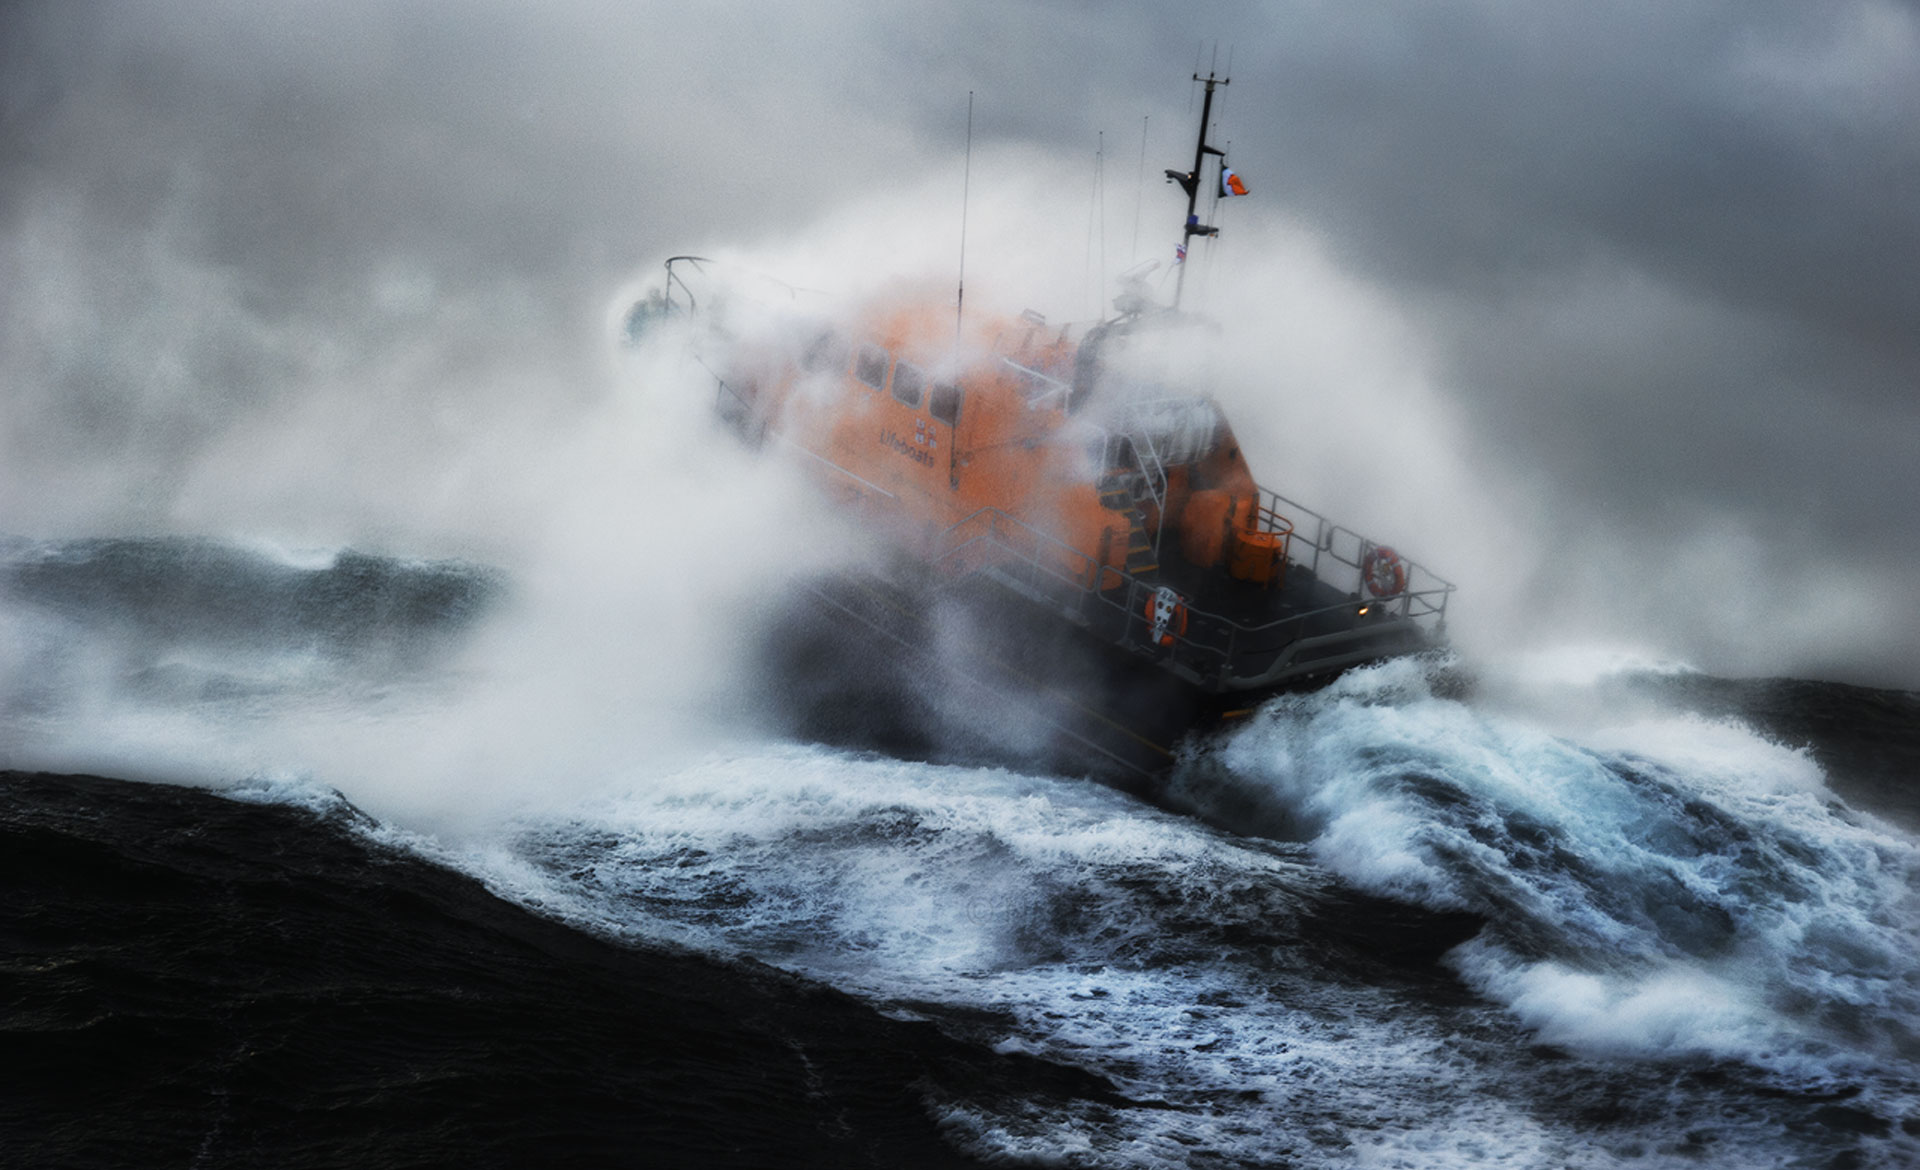 RNLI Photographer